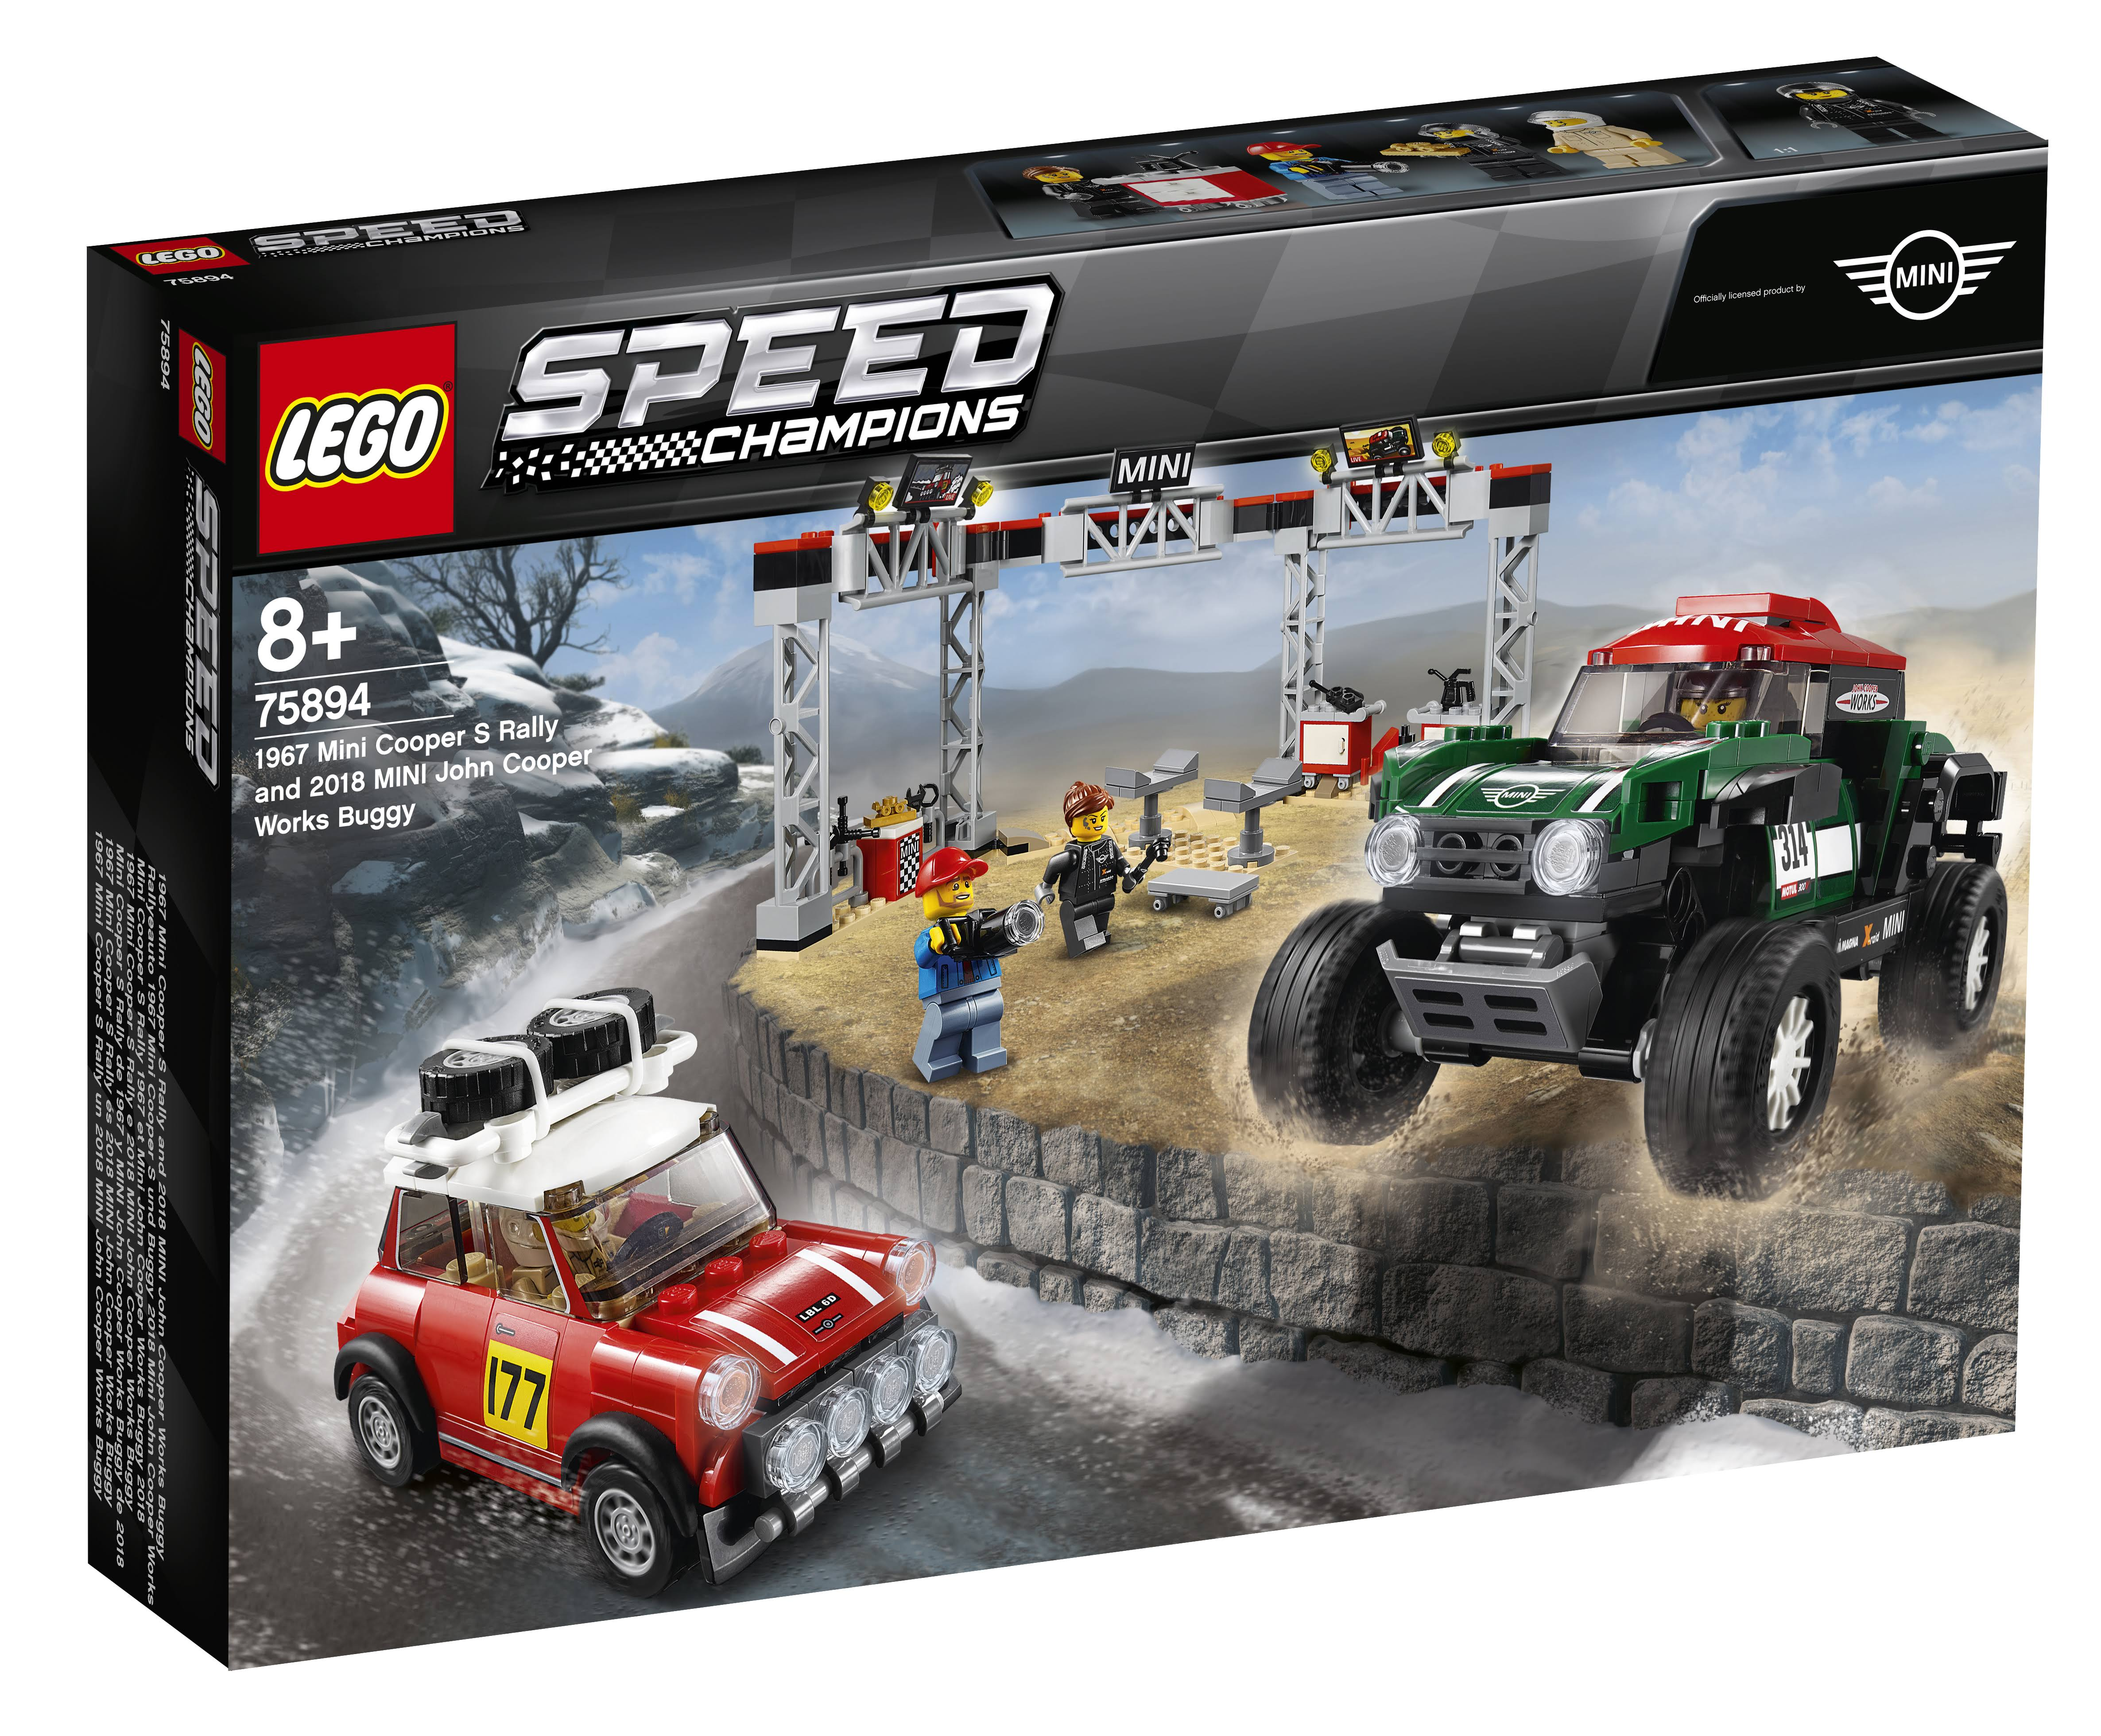 Lego 75894 Speed Champions Mini Cooper S Rally and Mini John Cooper Blockset